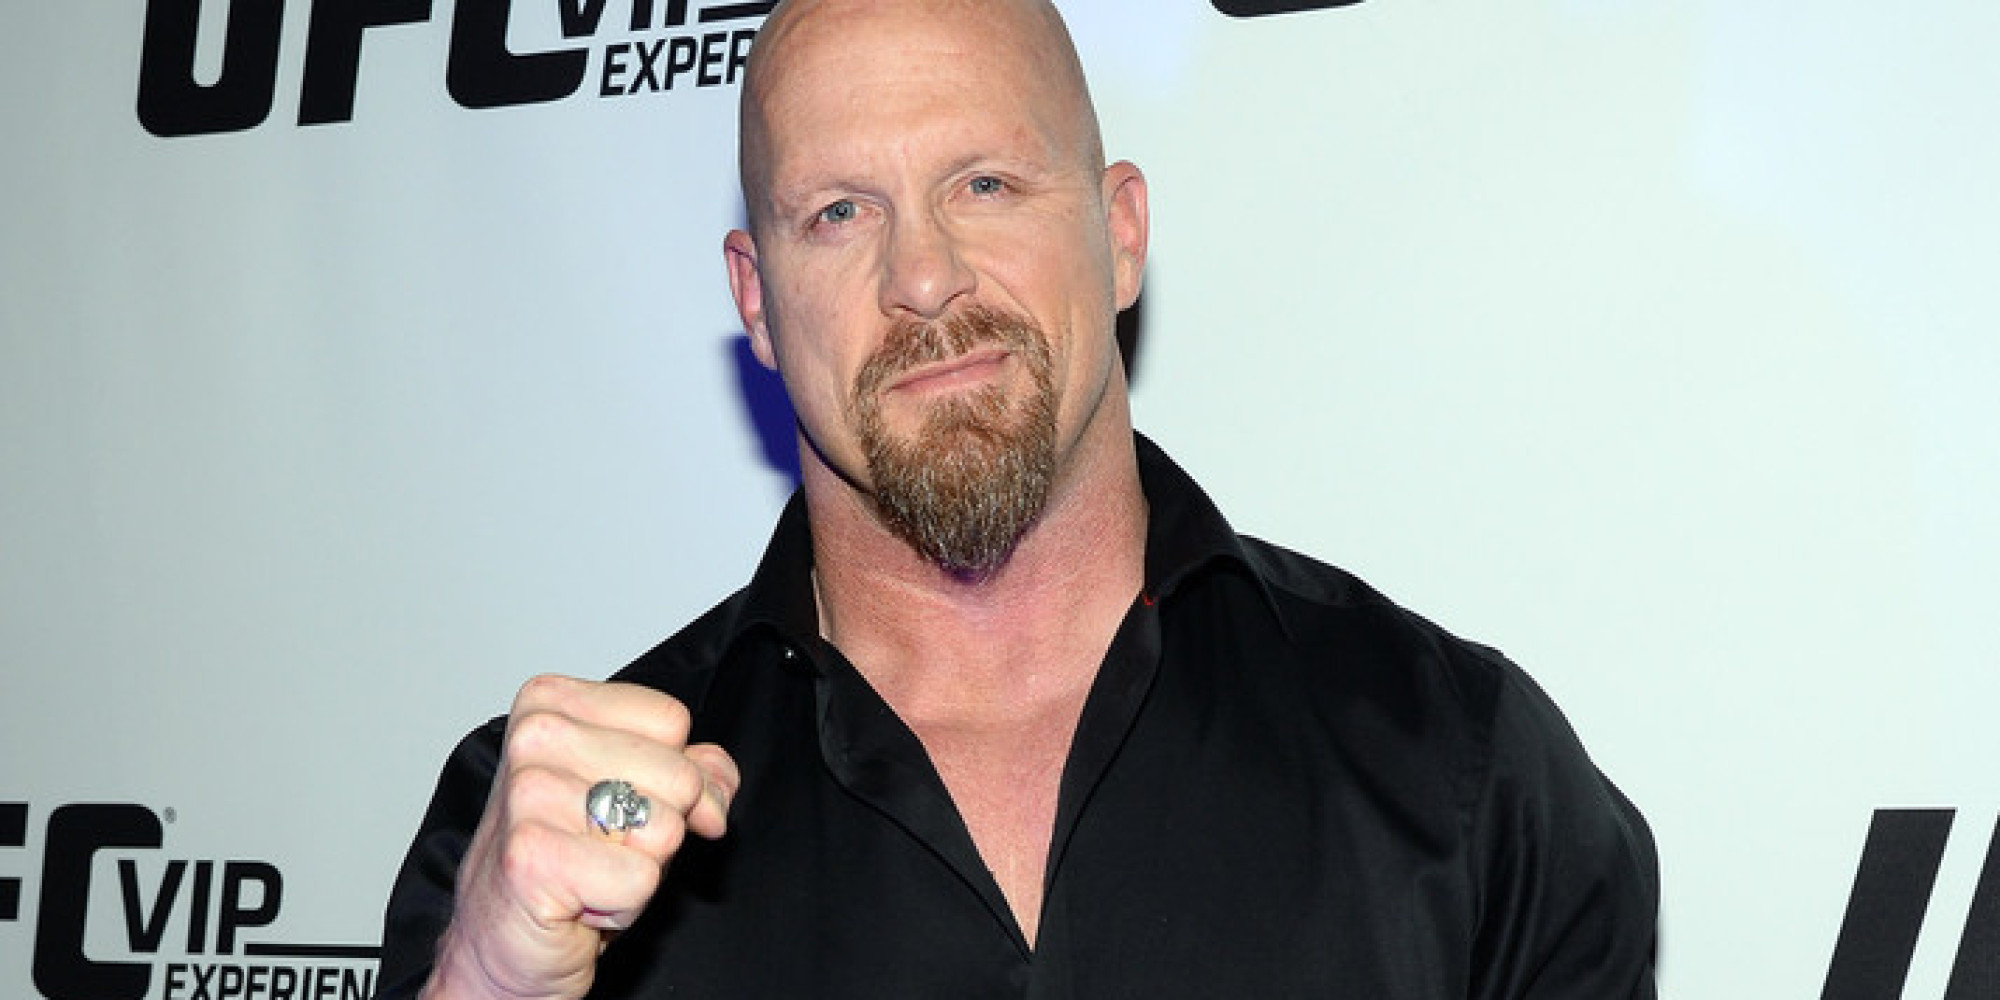 steve austin whatsteve austin what, steve austin podcast, steve austin filmleri, steve austin vs the rock, steve austin film, steve austin young, steve austin height, steve austin twitter, steve austin wikipedia, steve austin abaleanie, steve austin theme song, steve austin wife, steve austin gif, steve austin broken skull challenge, steve austin song, steve austin music, steve austin theme song download, steve austin stone cold, steve austin facebook, steve austin imdb